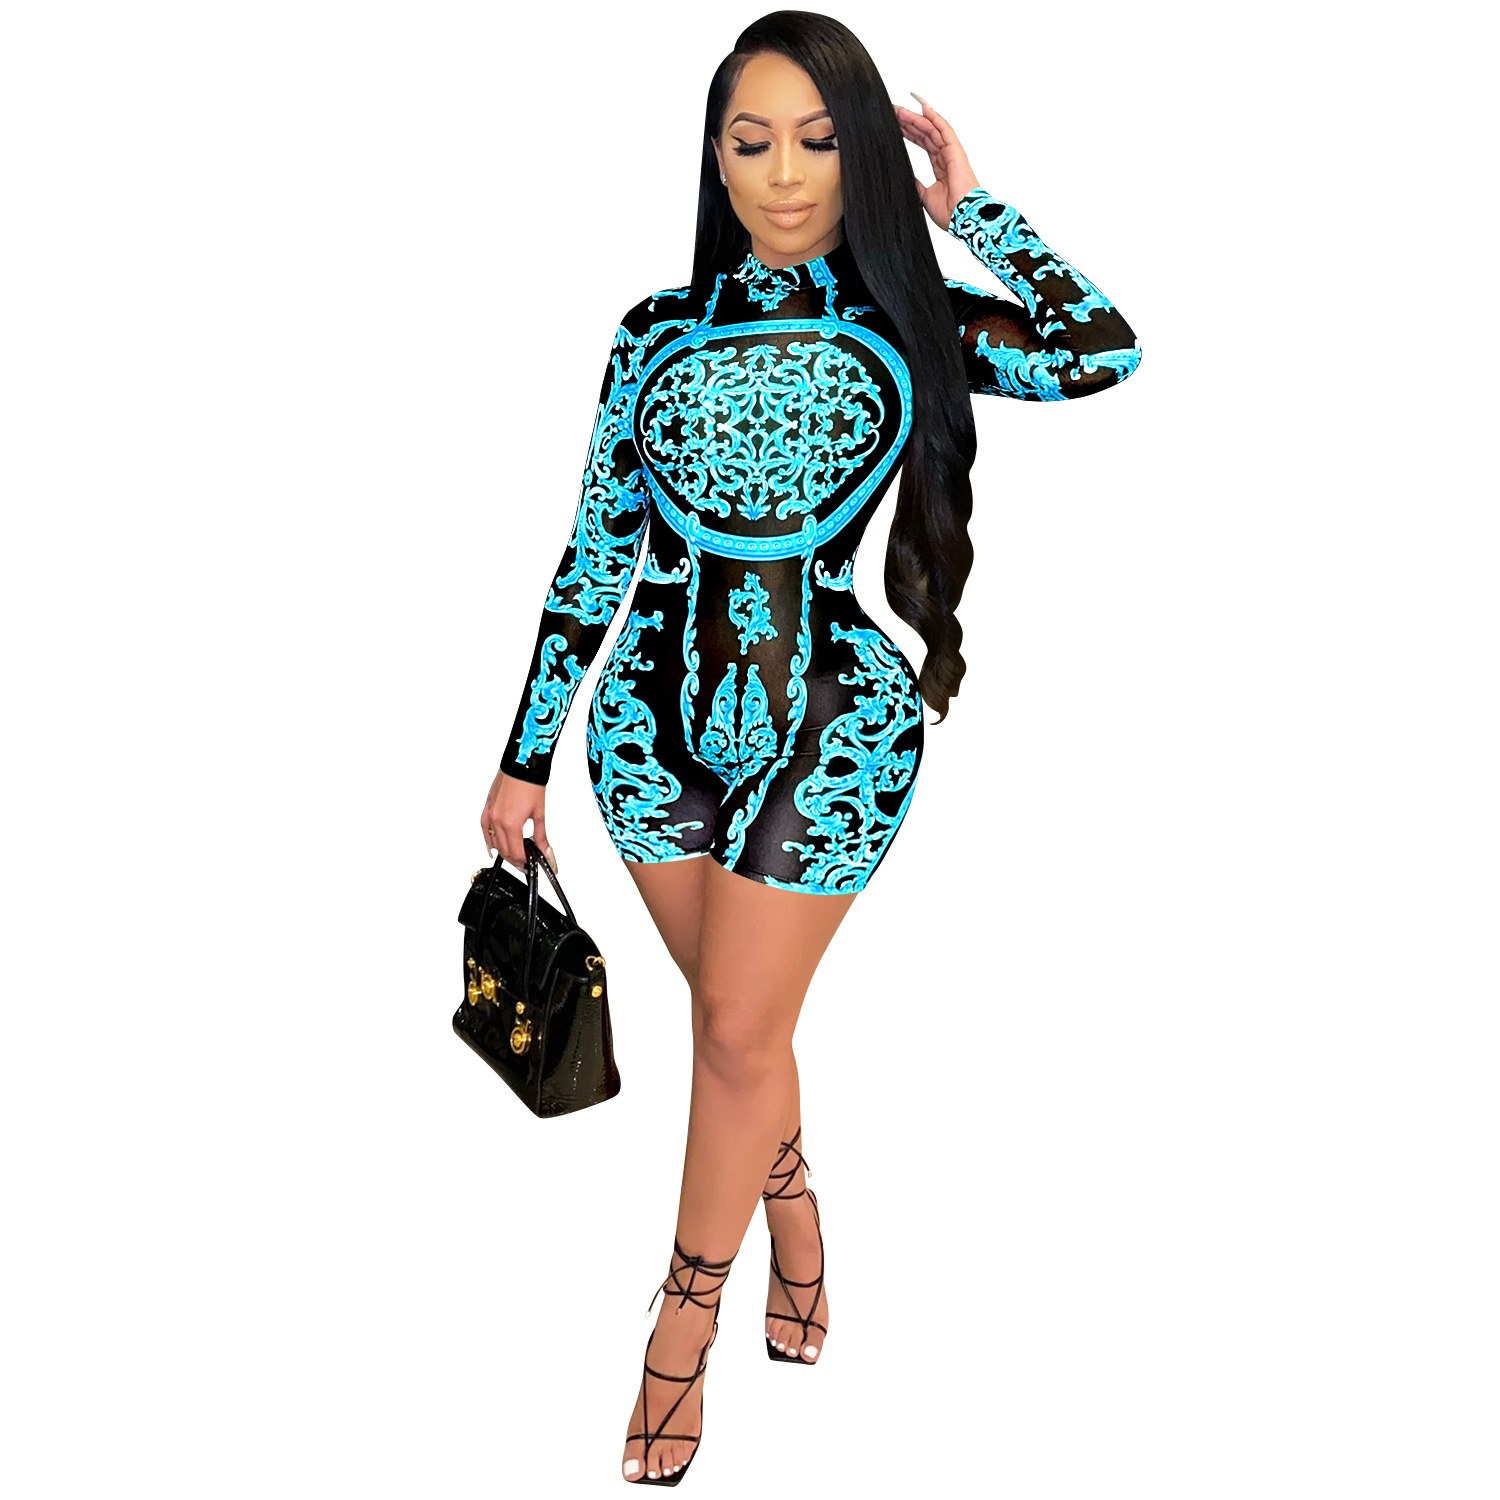 Zoctuo Playsuit Women Turtleneck Sexy Rompers Jumpsuit Autumn Long Sleeve Print Playsuits Party Club Skinny Shorts Jumpsuits